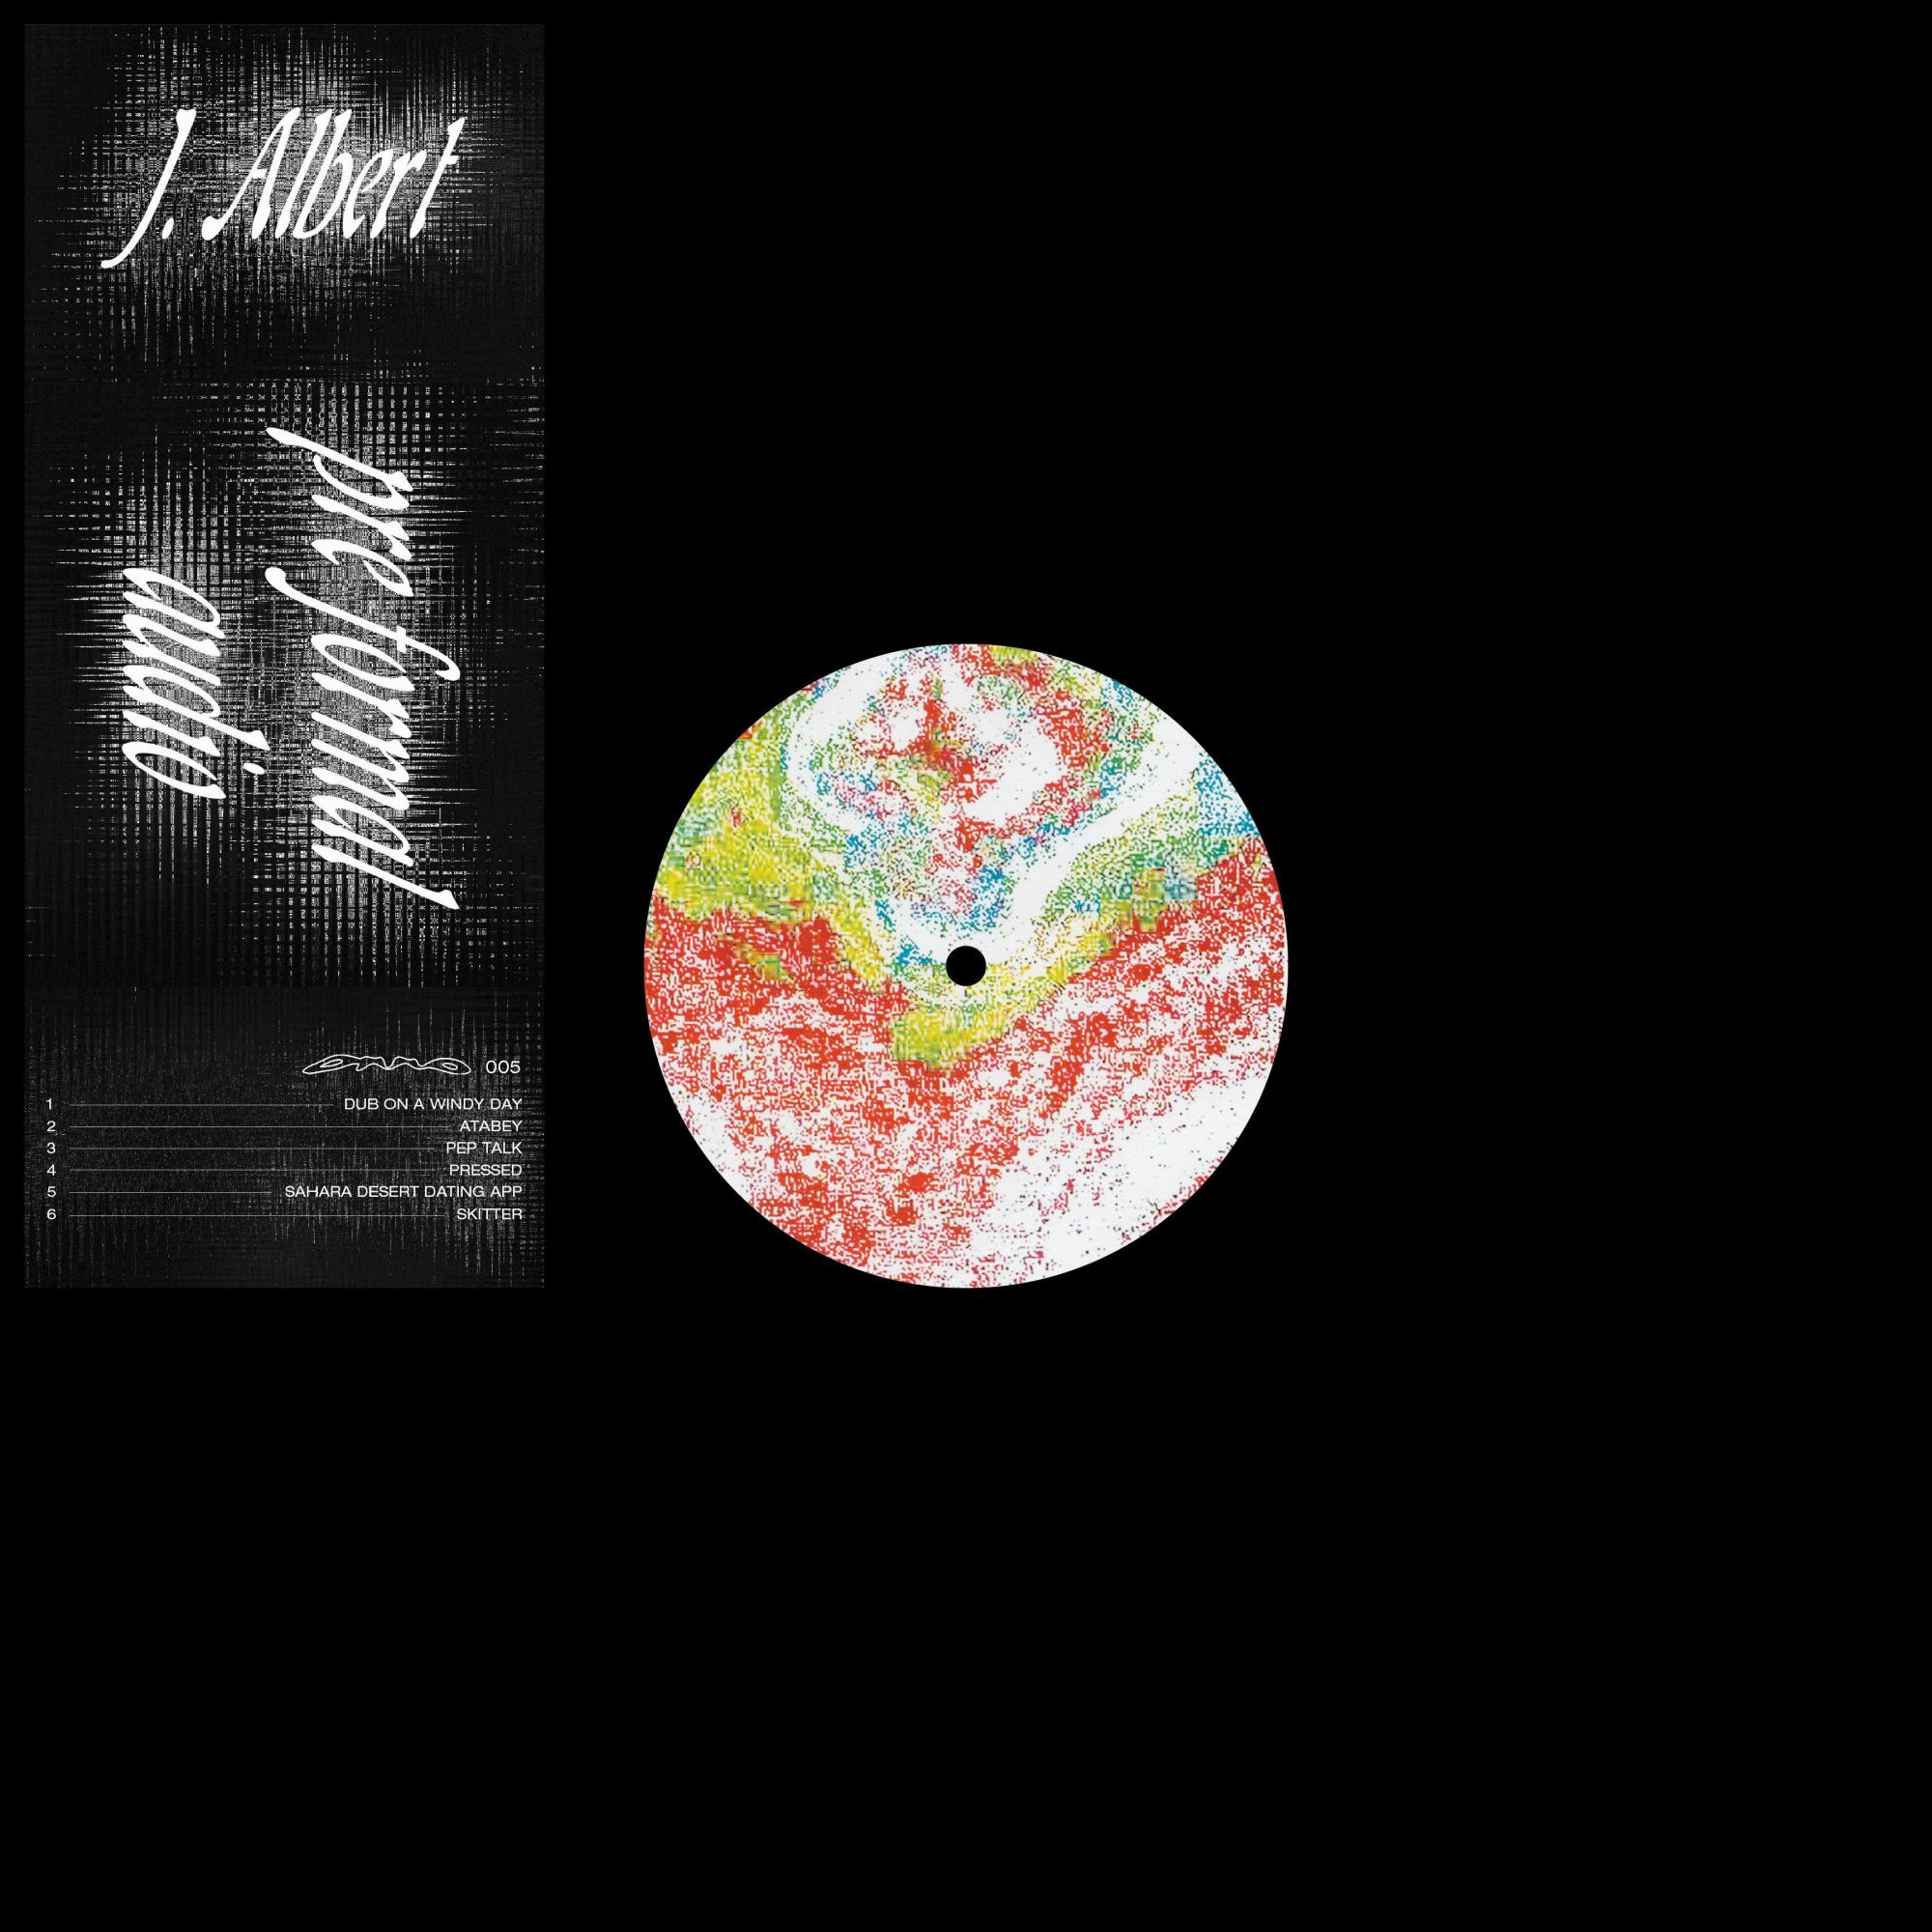 J. Albert - Pre Formal Audio